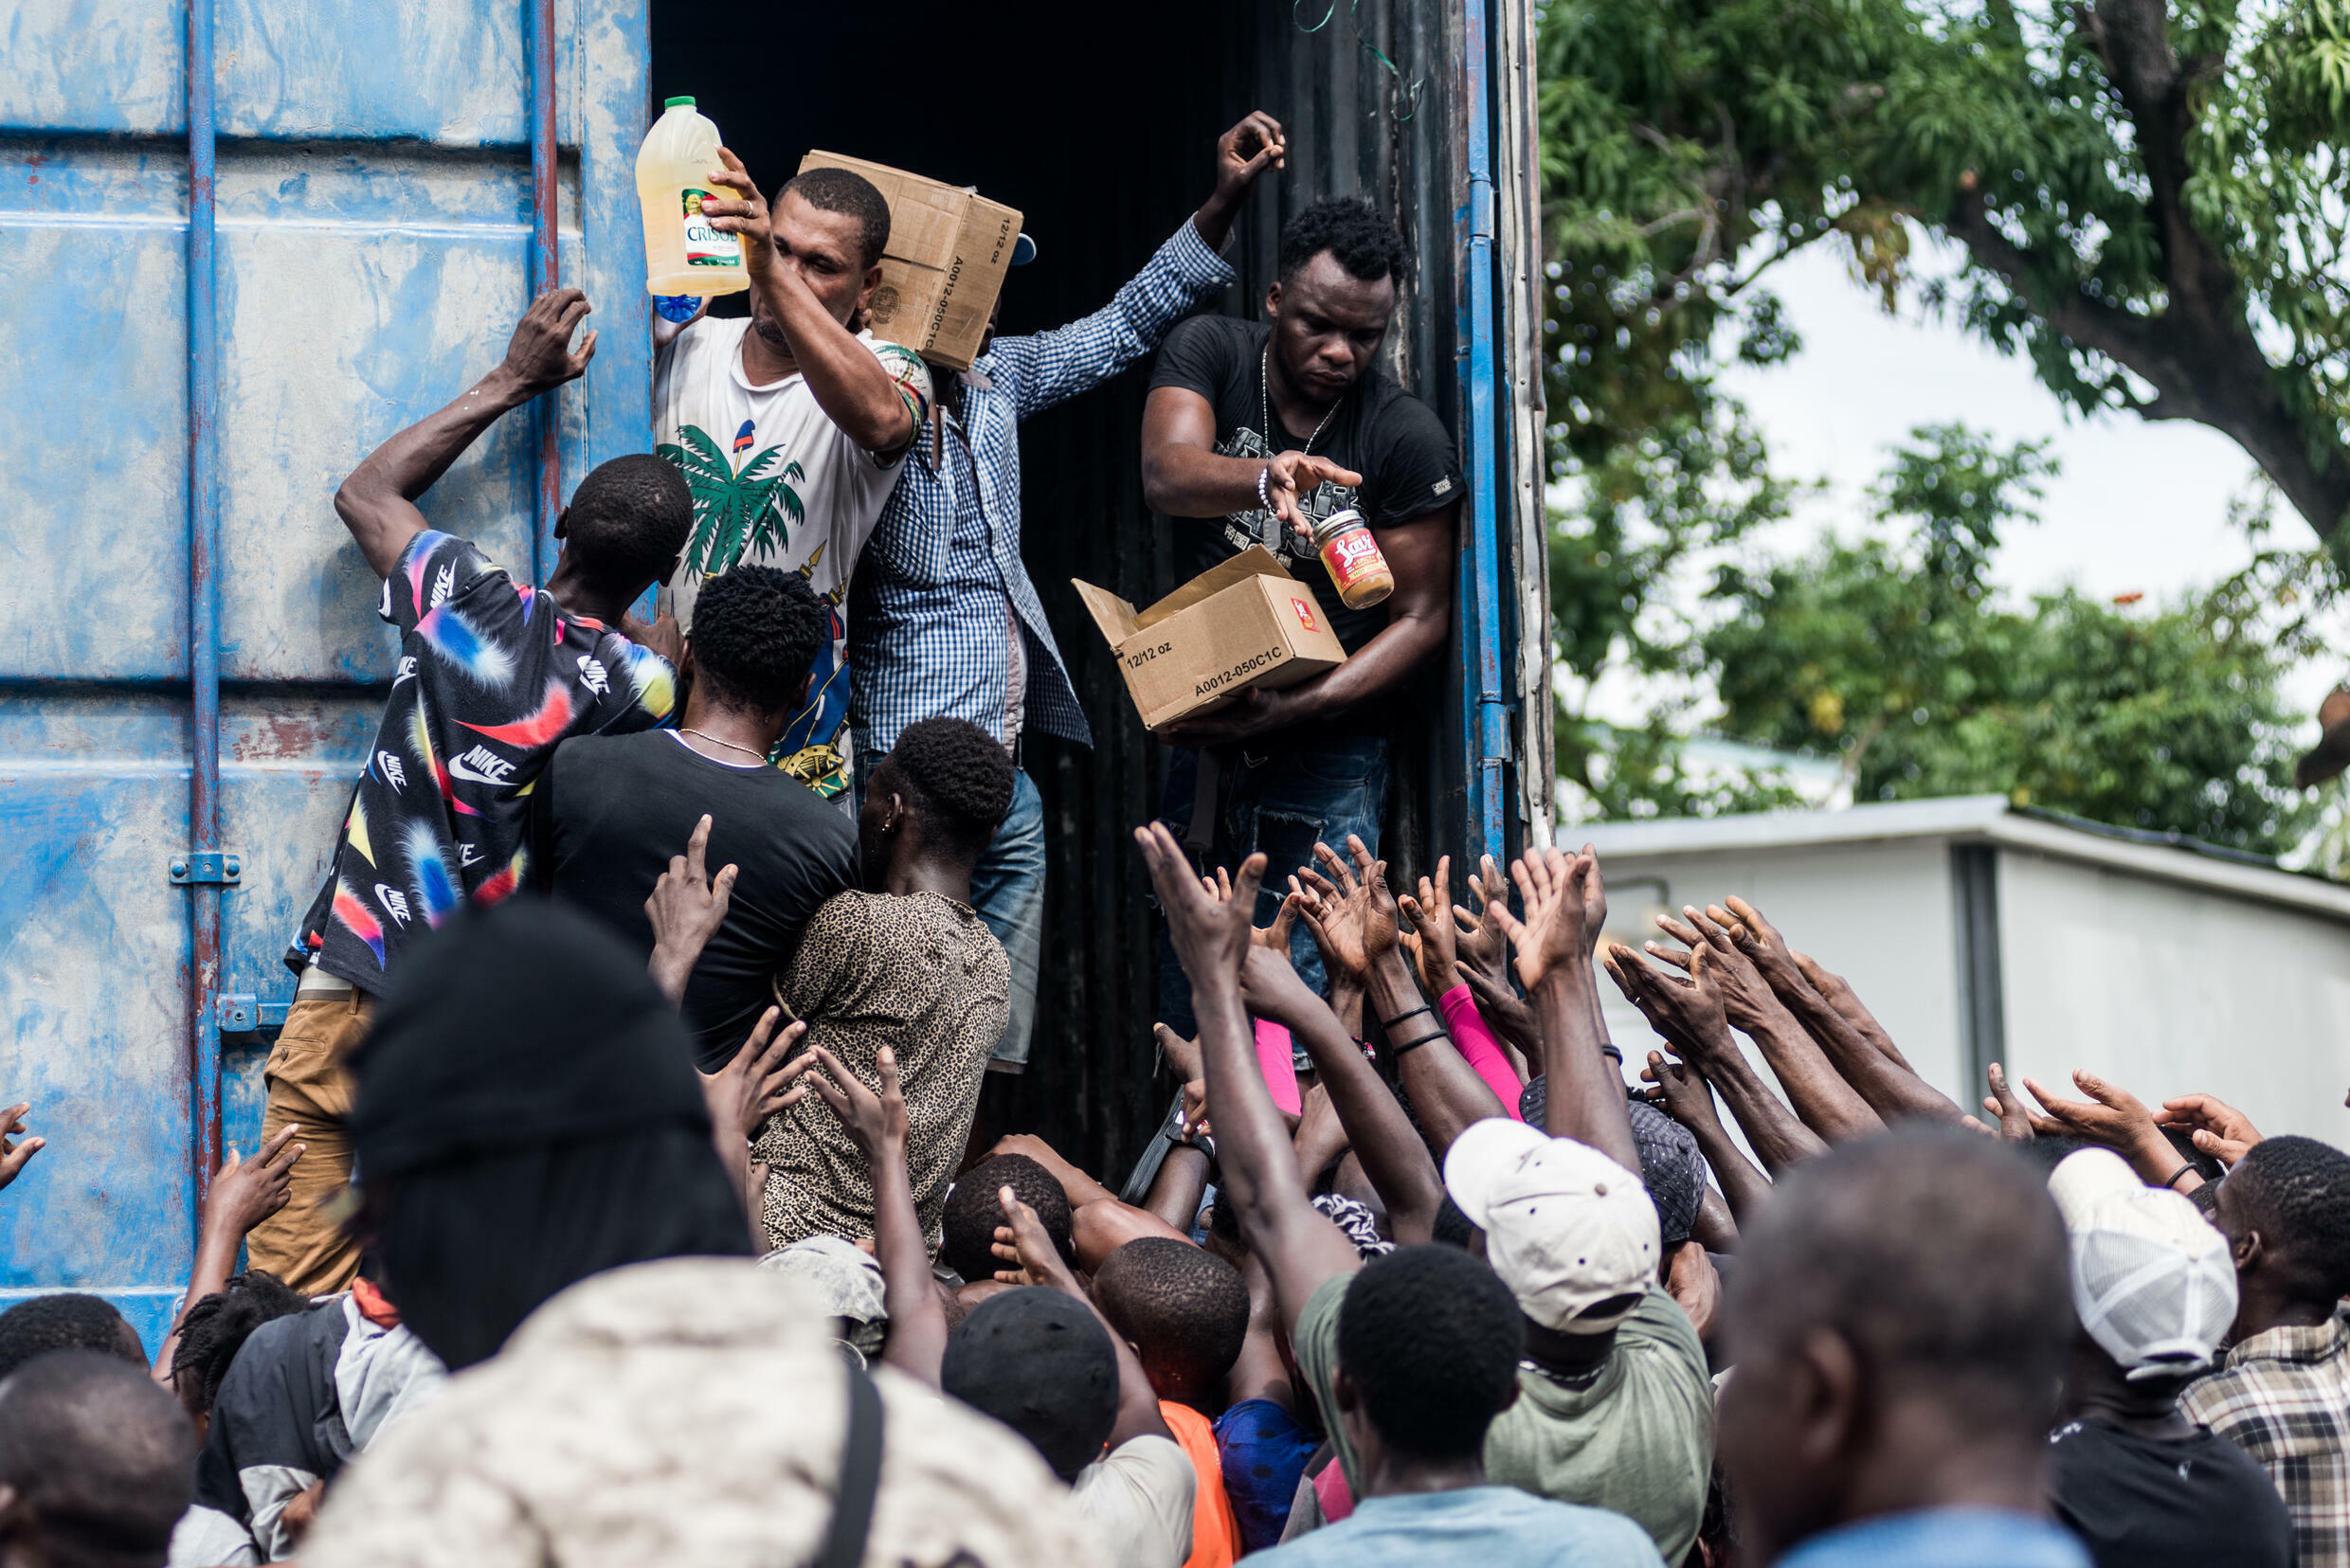 Men hand out supplies to a crowd of earthquake victims during the distribution of food and water in Les Cayes, Haiti, August 20, 2021